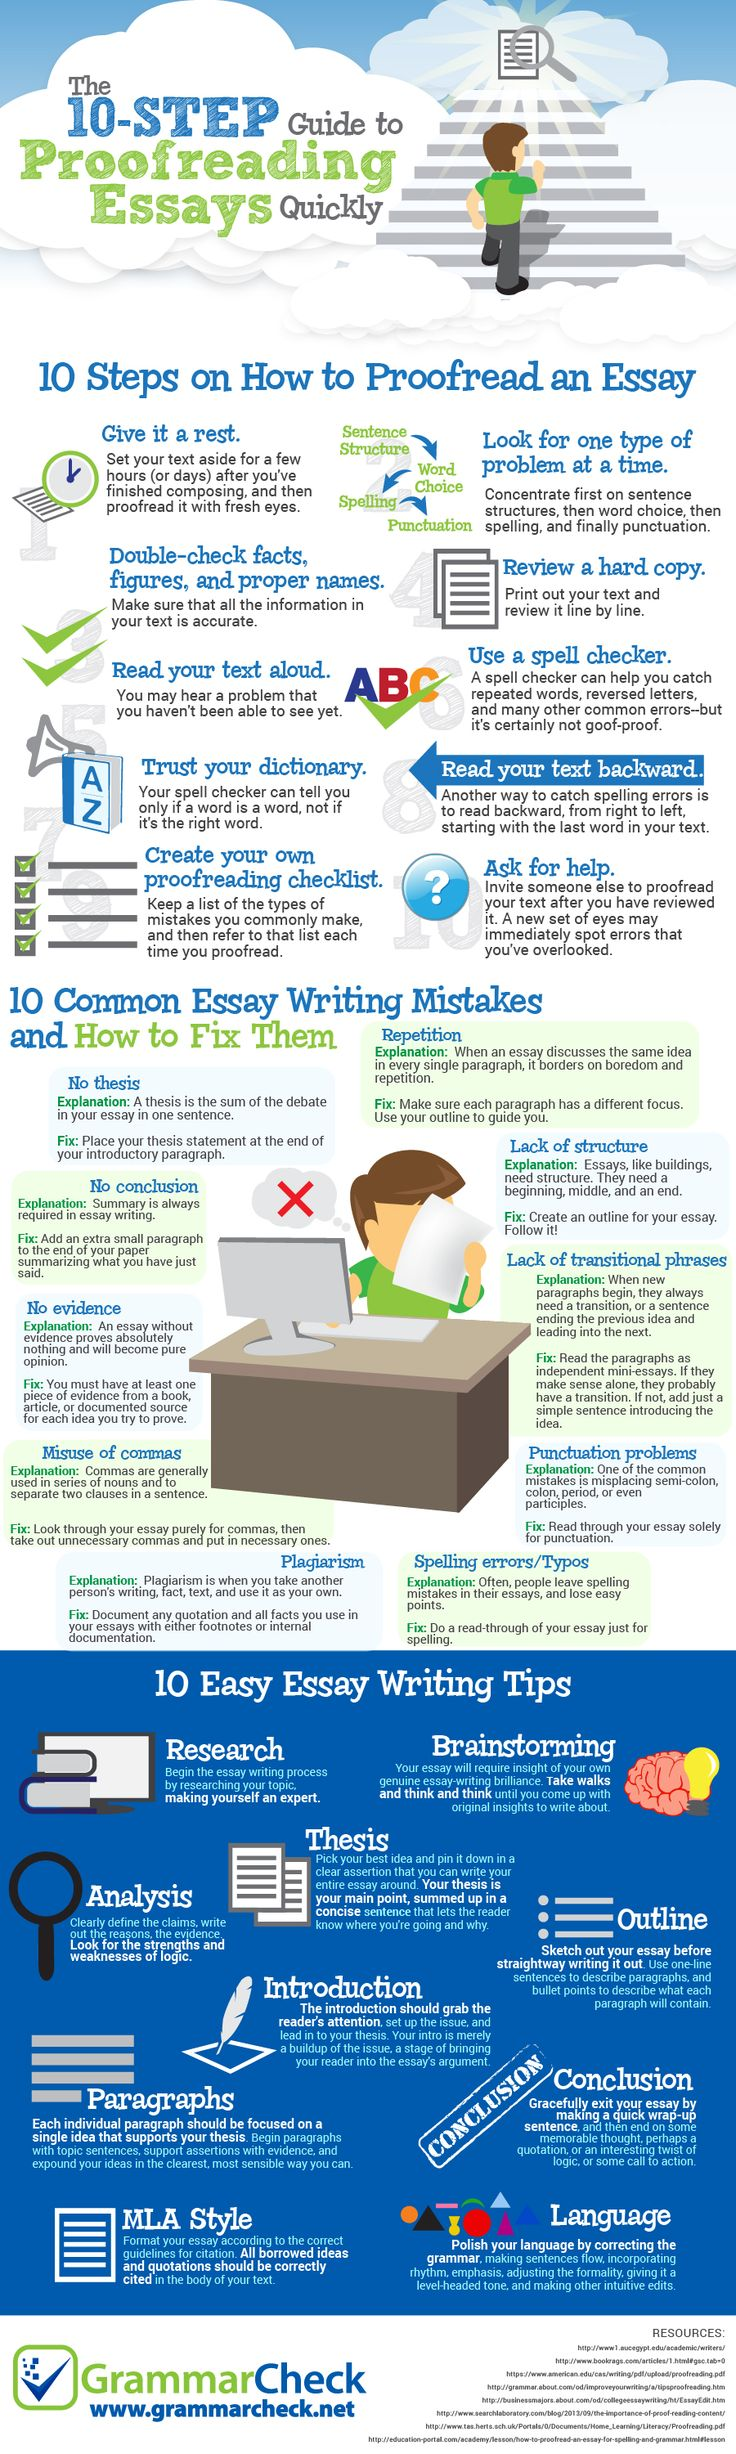 top ideas about essay tips college organization writing for journals patter has posted a lot about writing for journals all of those posts are gathered together here placed in the order in which you